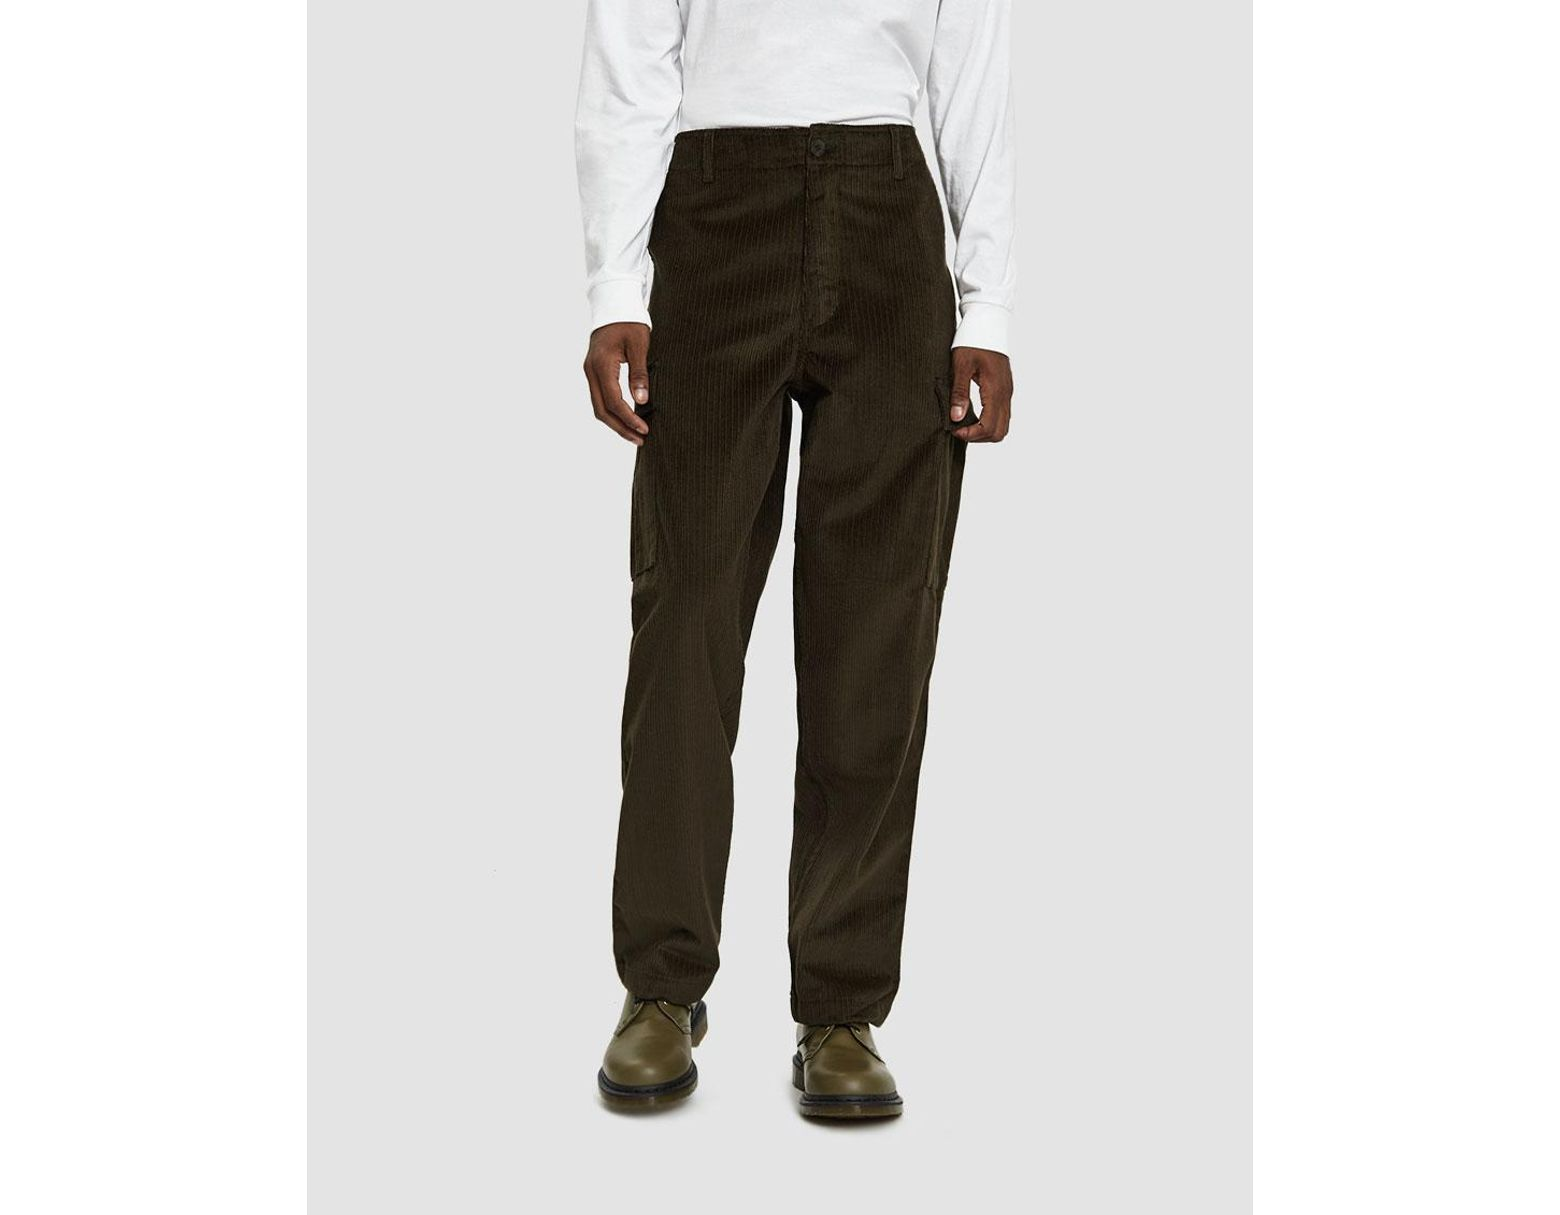 437381bc Pop Trading Co. Corduroy Cargo Pants in Green for Men - Save 75% - Lyst